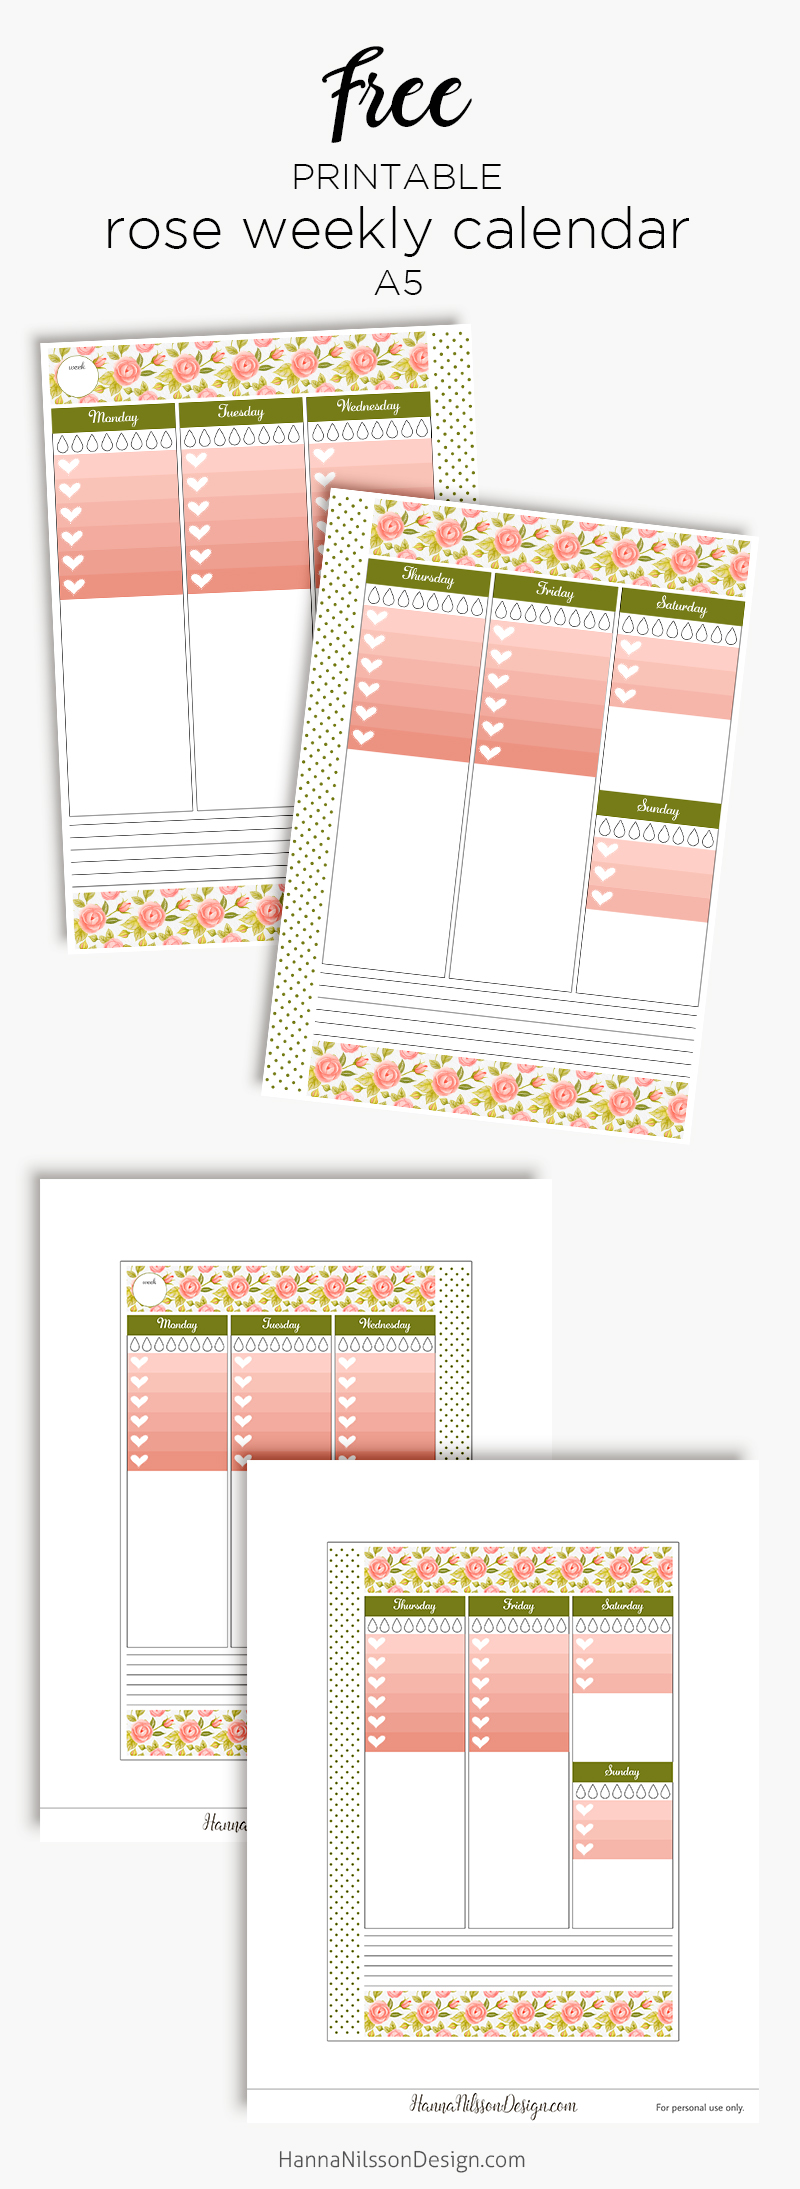 Pink rose weekly planner calendar | Printable planner calendar insert | Ombre to-do list and water trackers | #planner #filofax #printables #A5 #freeprintable